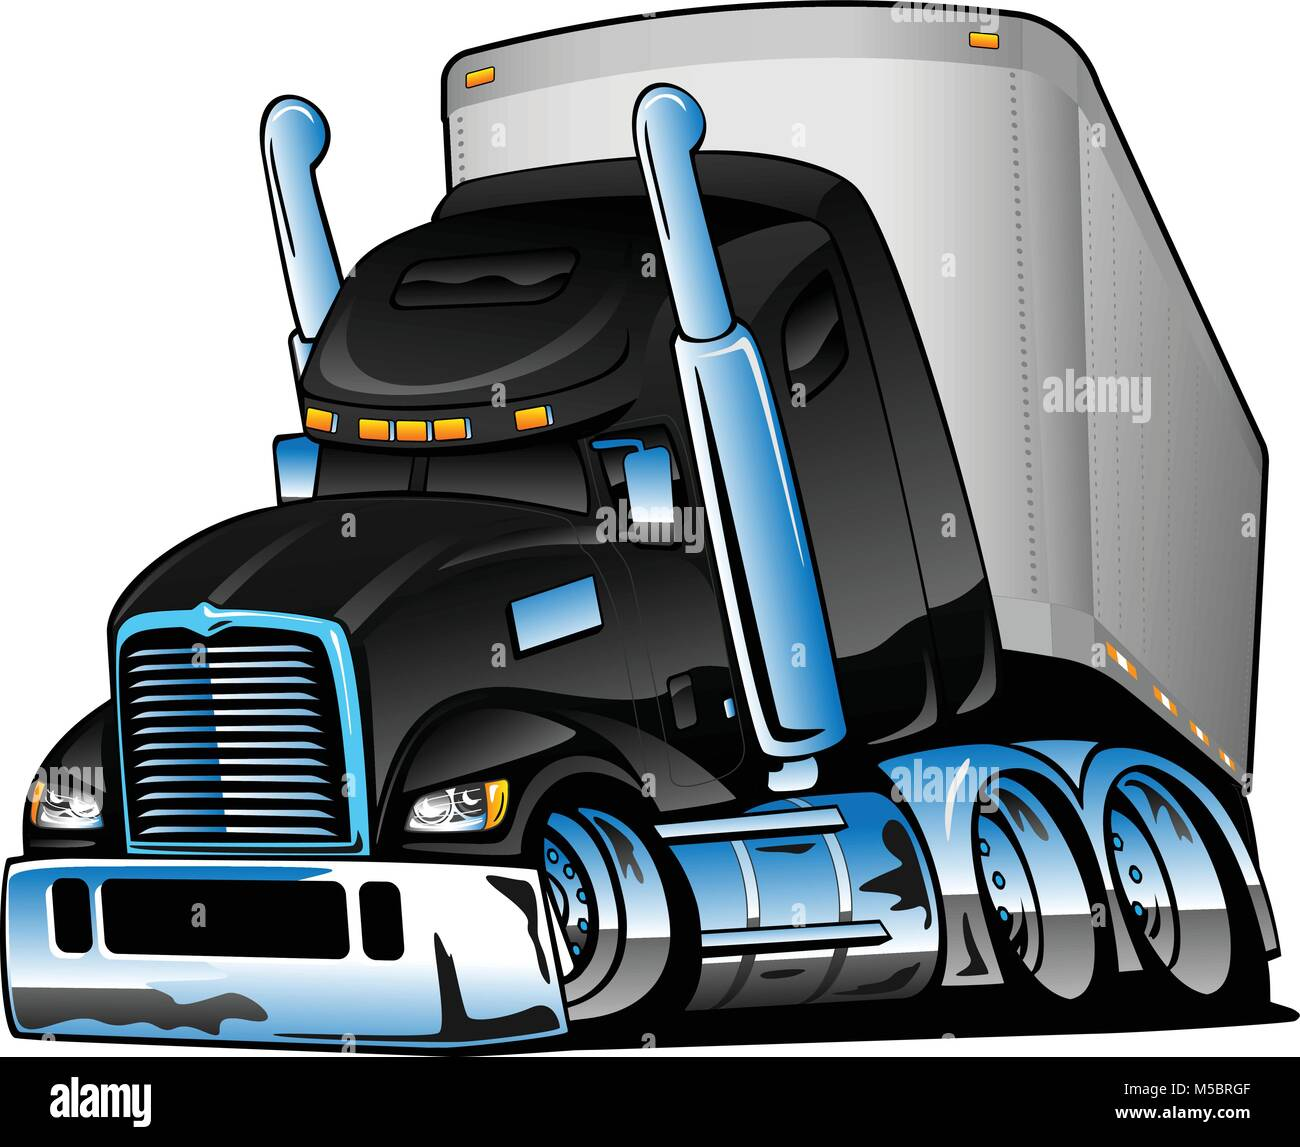 Semi Trailer Vector Vectors Imágenes De Stock & Semi Trailer Vector ...